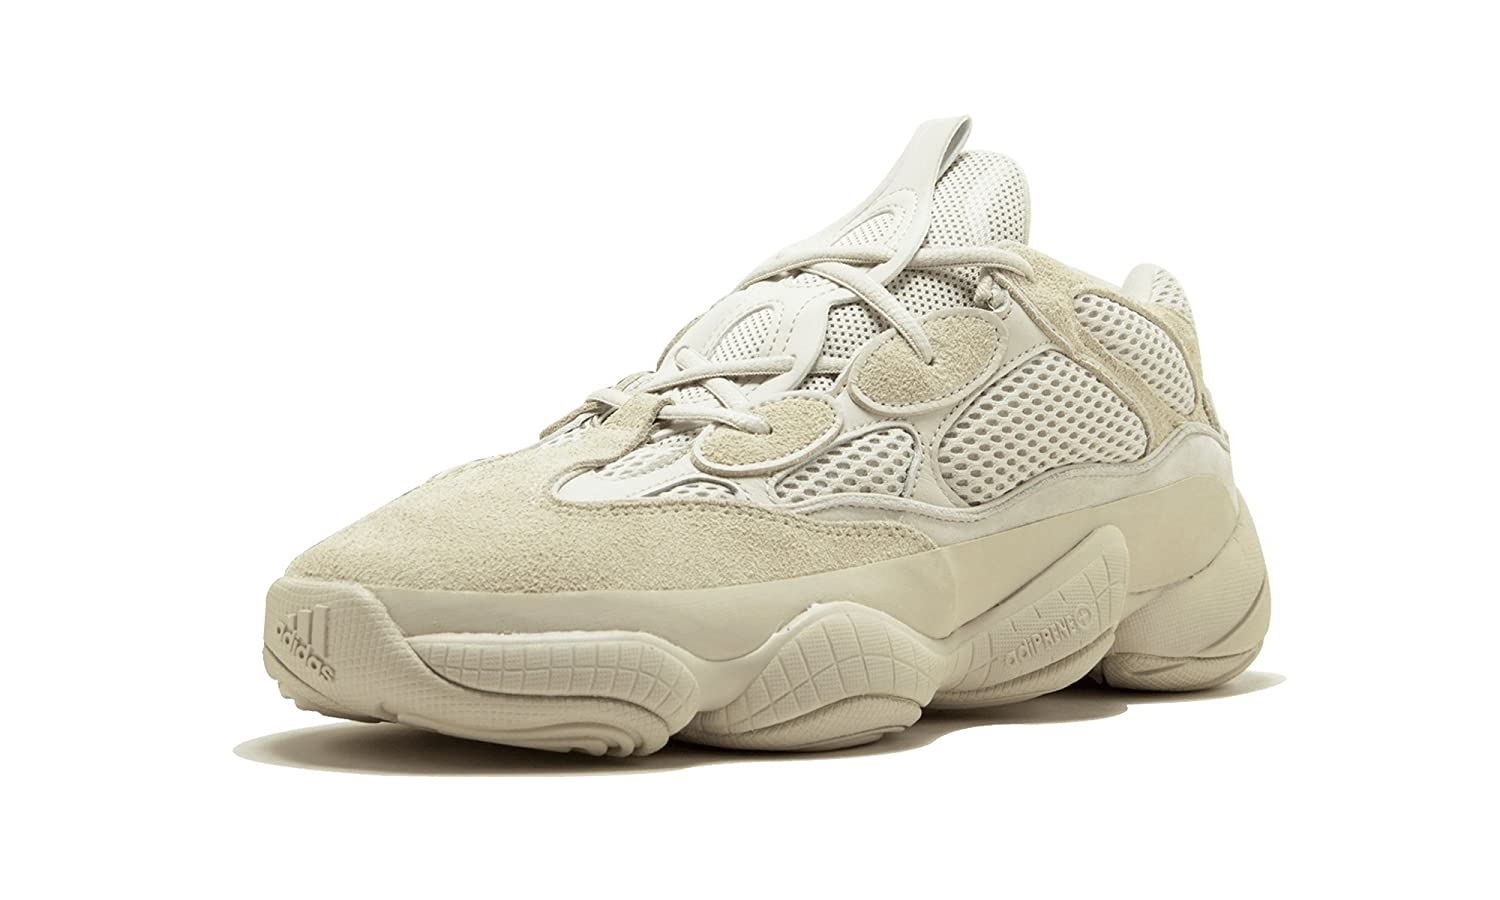 new arrival 9db56 9f9c1 Expanding his adidas Yeezy line, Kanye West developed the Yeezy 500  sneaker. The Yeezy 500 is a blend of retro and modern, with a chunky sole  unit from the ...